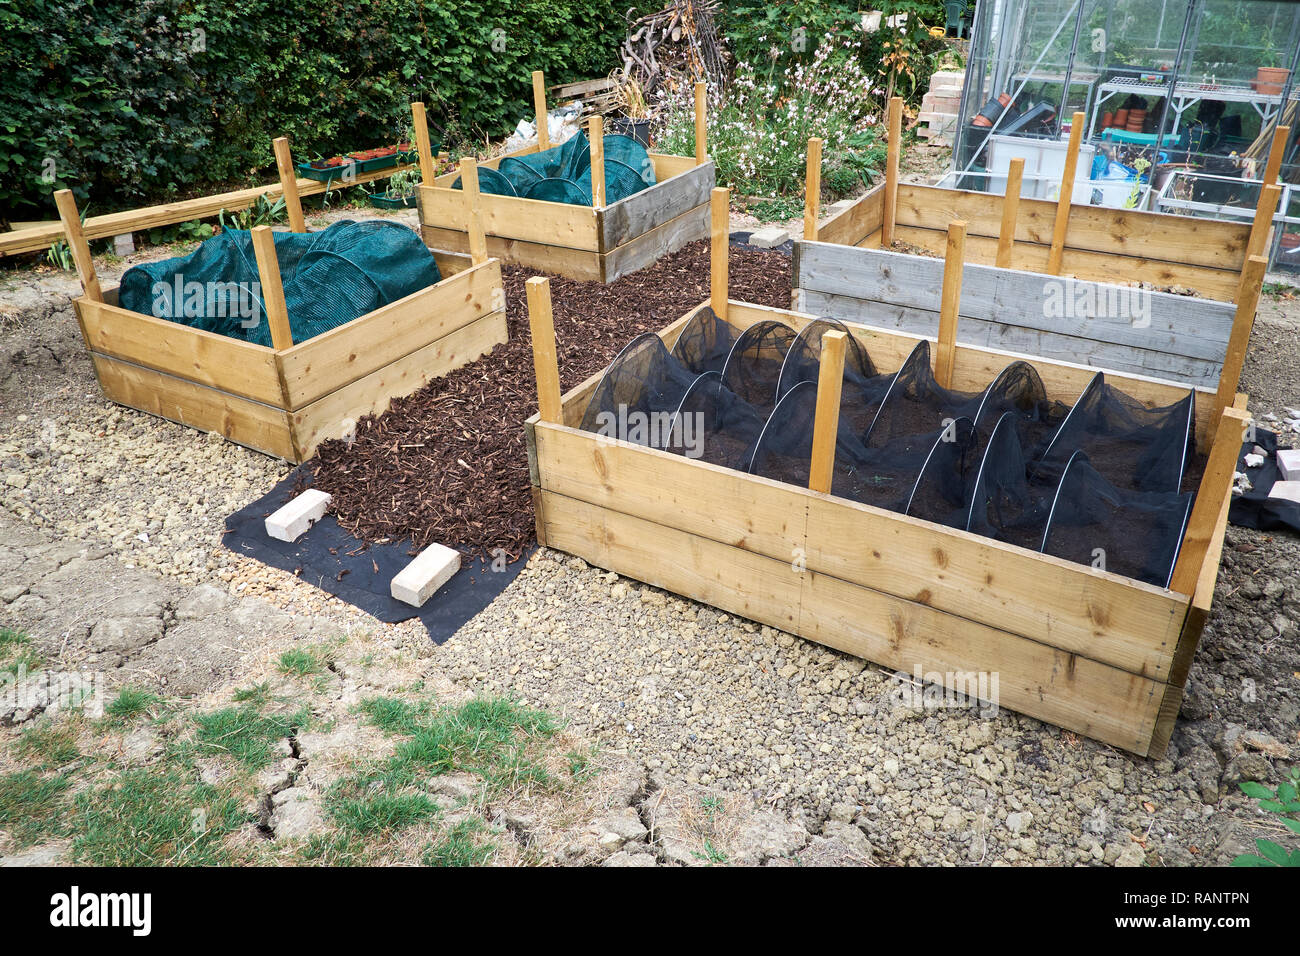 Picture of: Timber Raised Bed Construction In A Vegetable Garden Uk Stock Photo Alamy